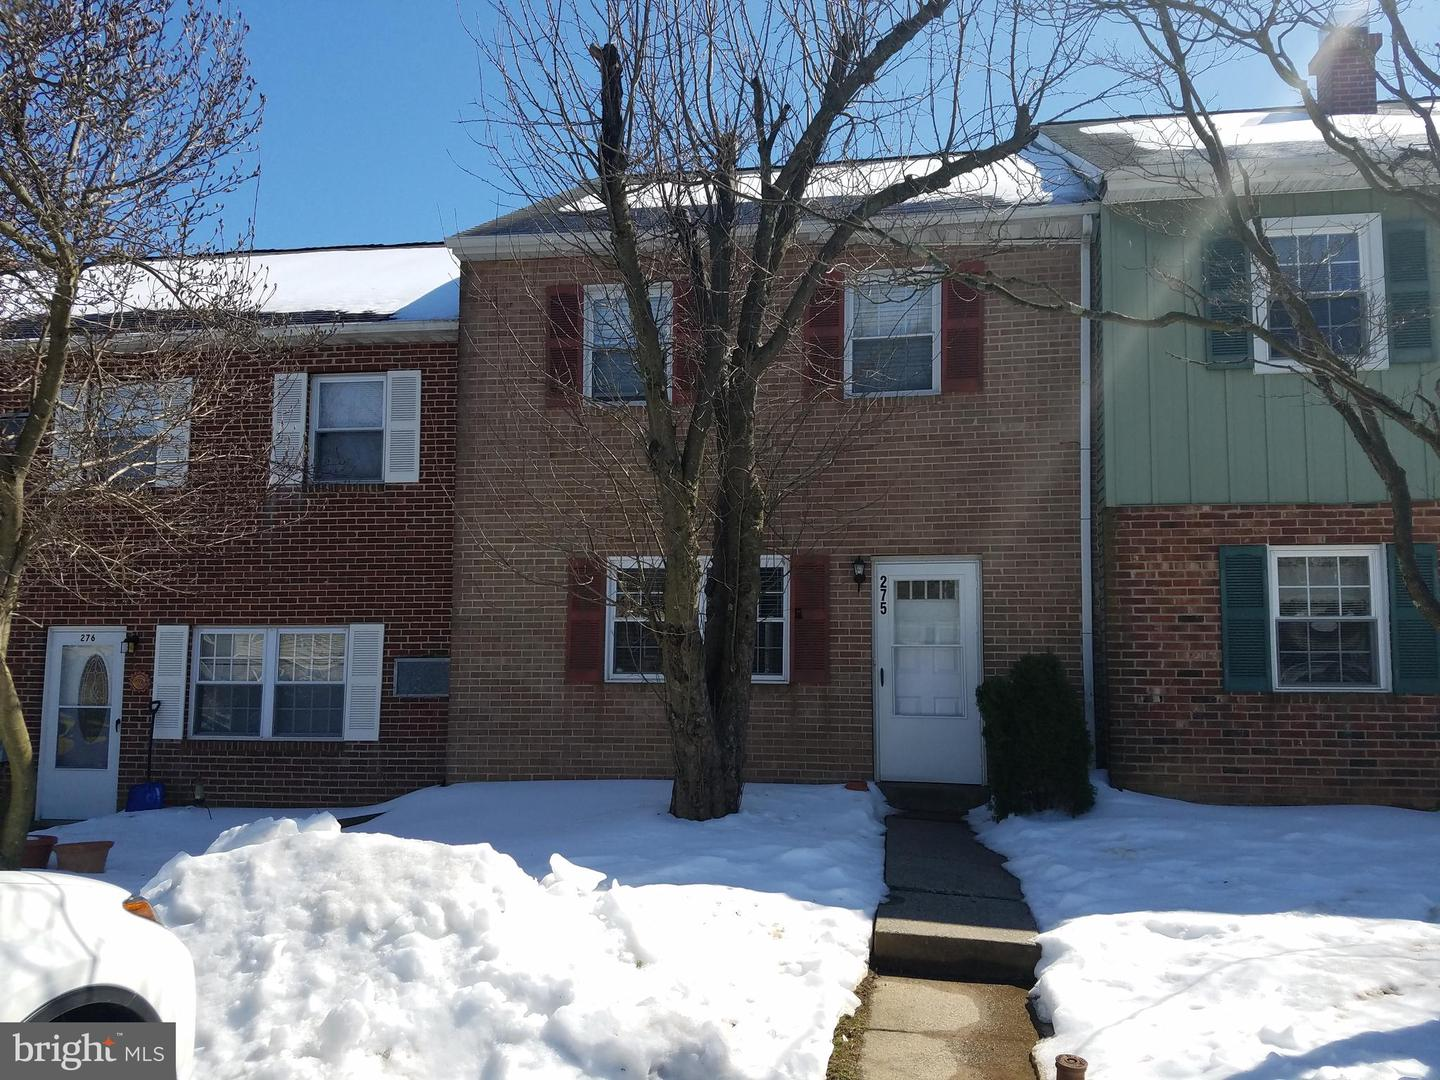 275 Cardigan Terrace West Chester , PA 19380